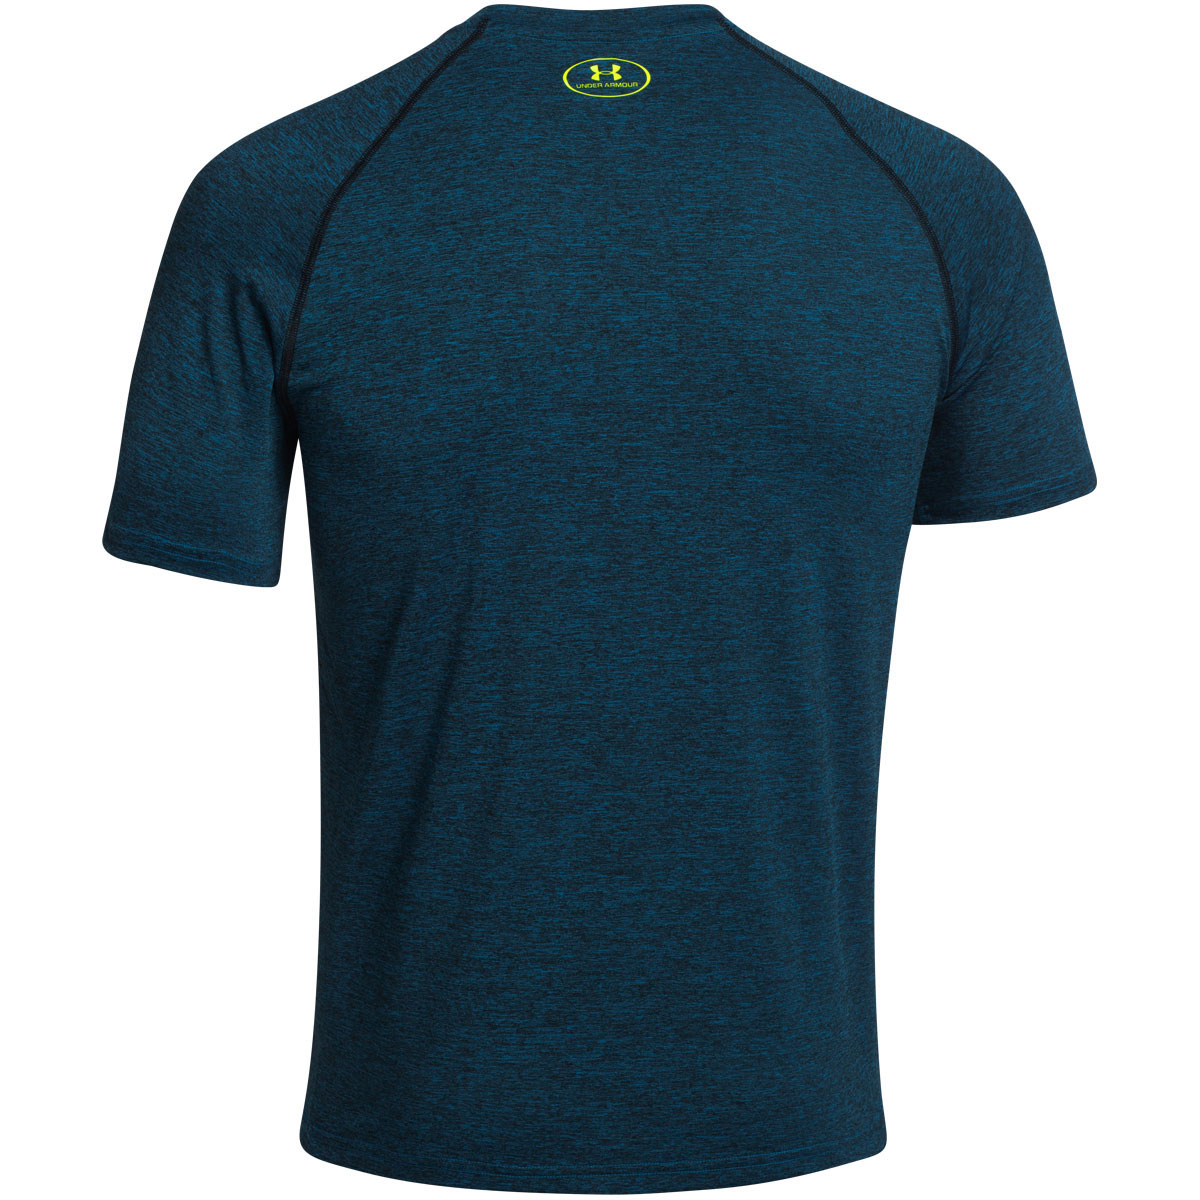 Under Armour 2017 Mens Ua Tech Ss T Shirt Heatgear Gym